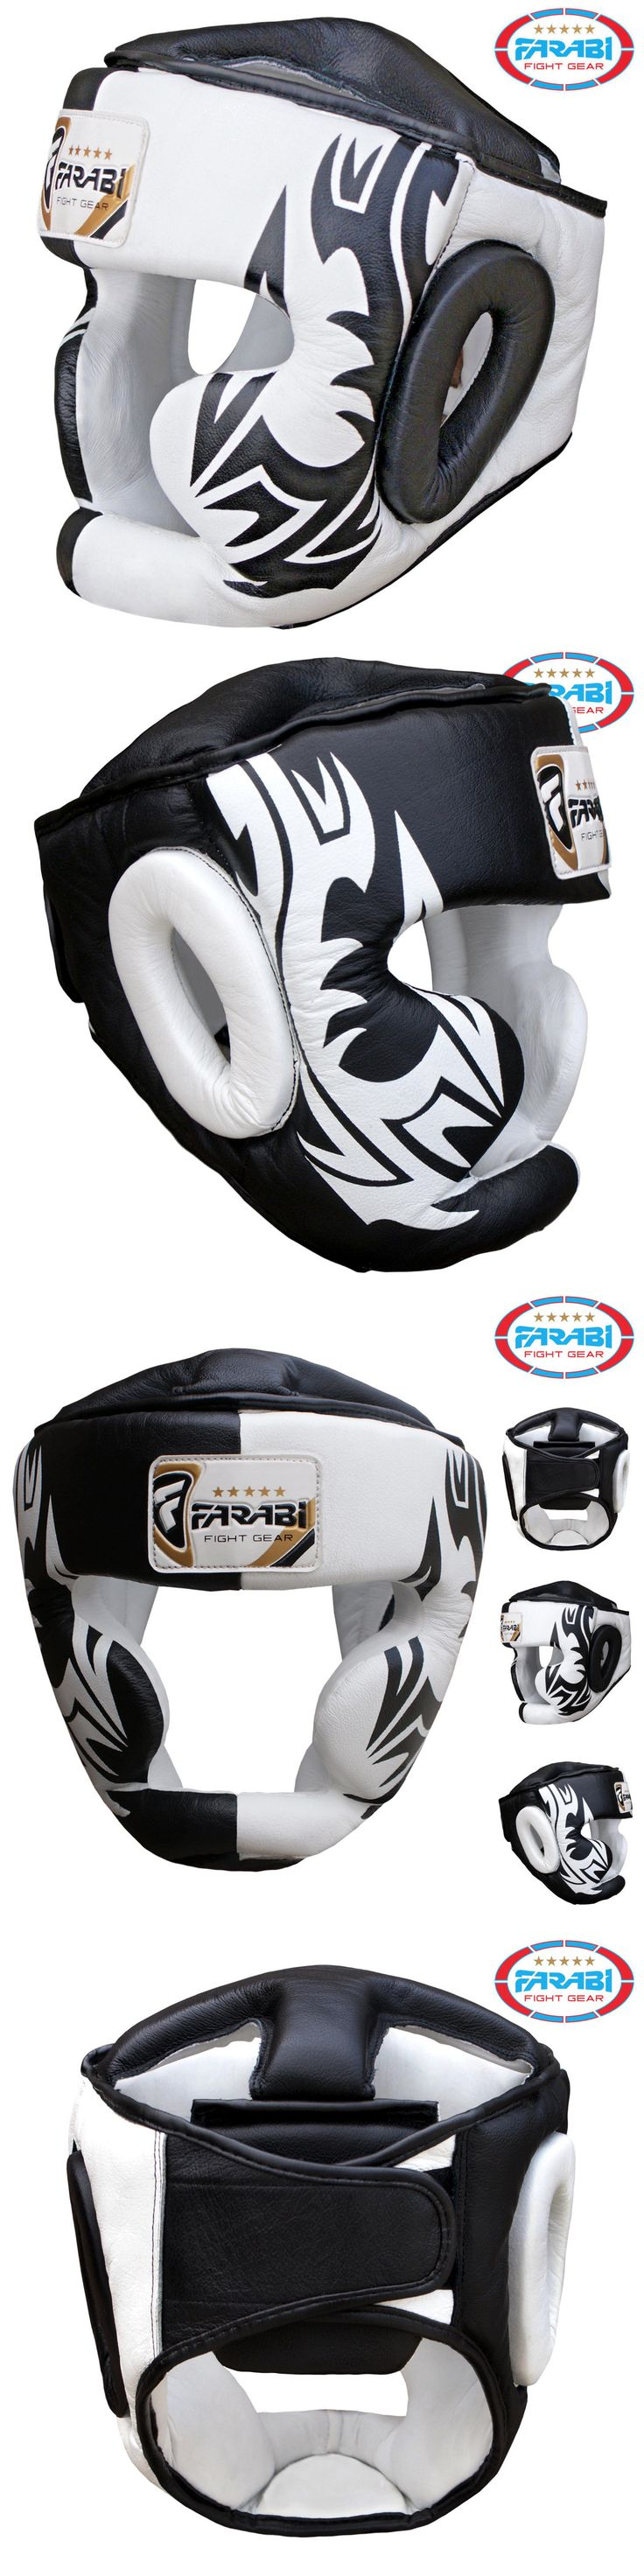 Head Gear 179780: Boxing Head Guard Geuine Leather Kick Boxing, Mma, Training Protector Chin Saver -> BUY IT NOW ONLY: $49.99 on eBay!